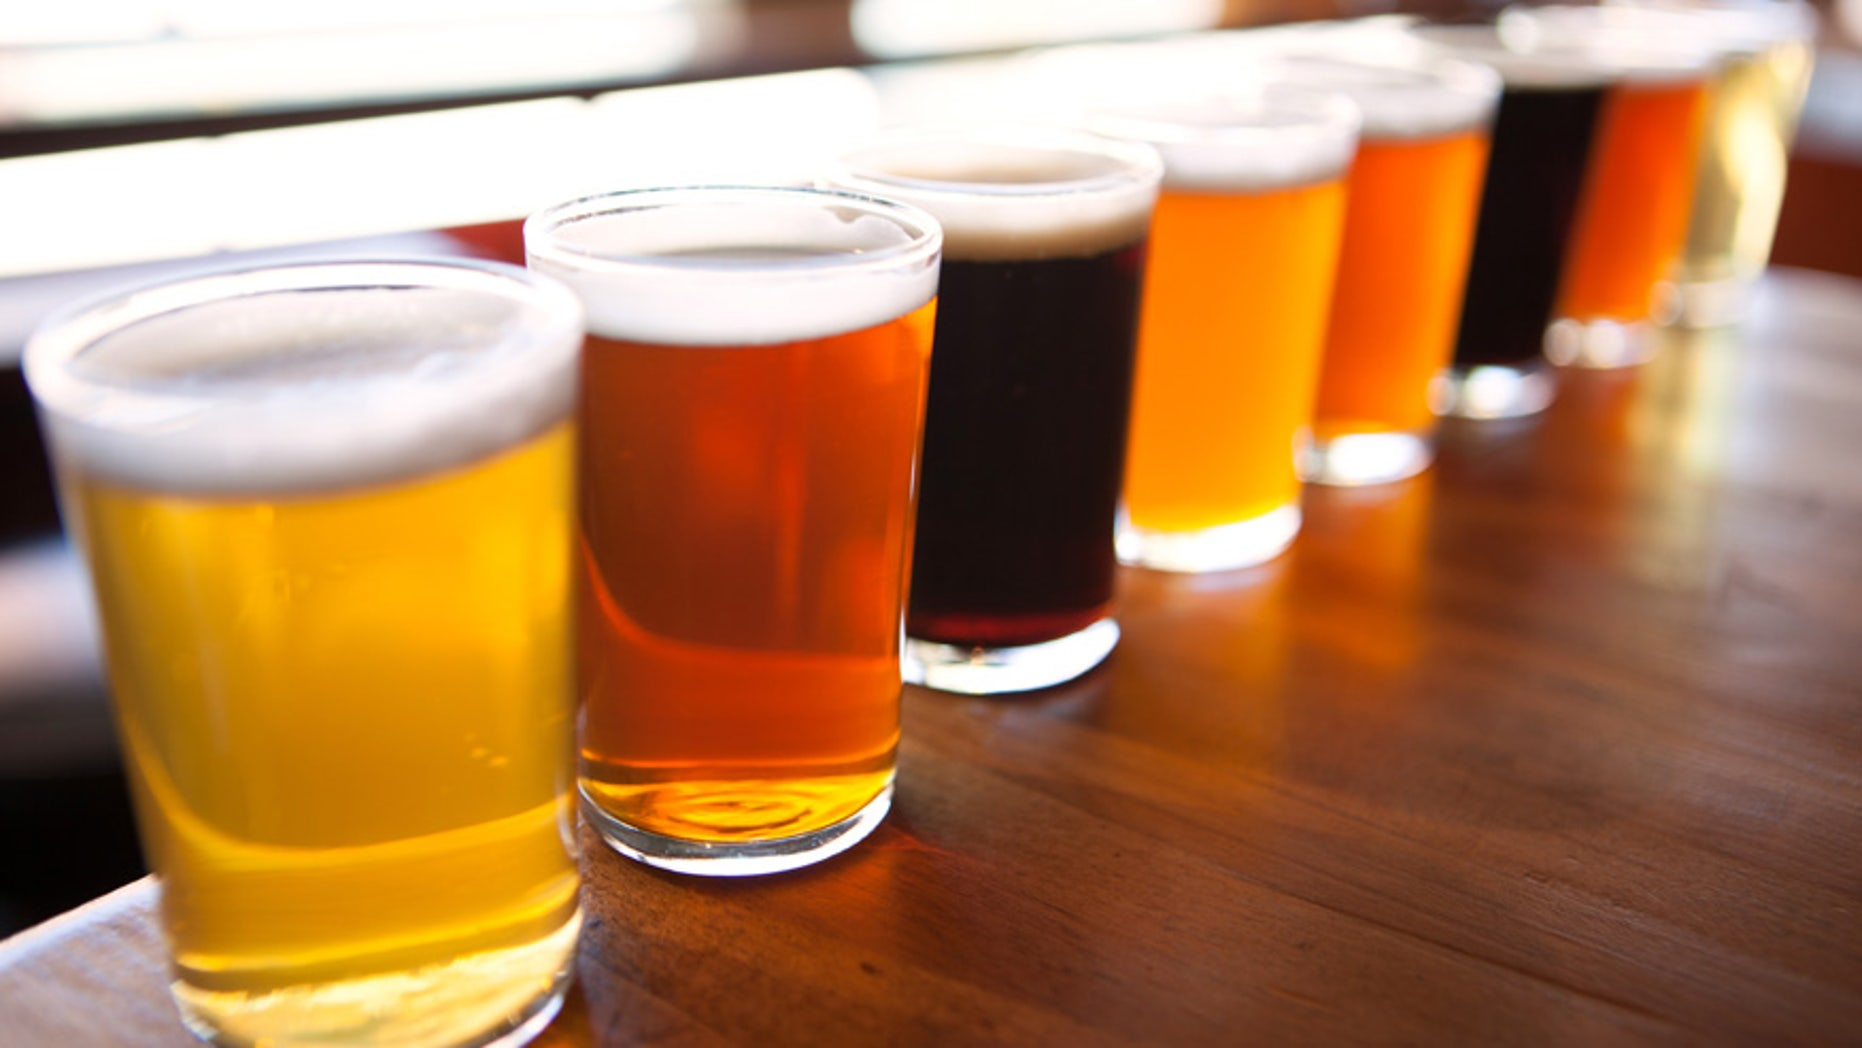 Craft beer production isn't growing as fast as it used to.